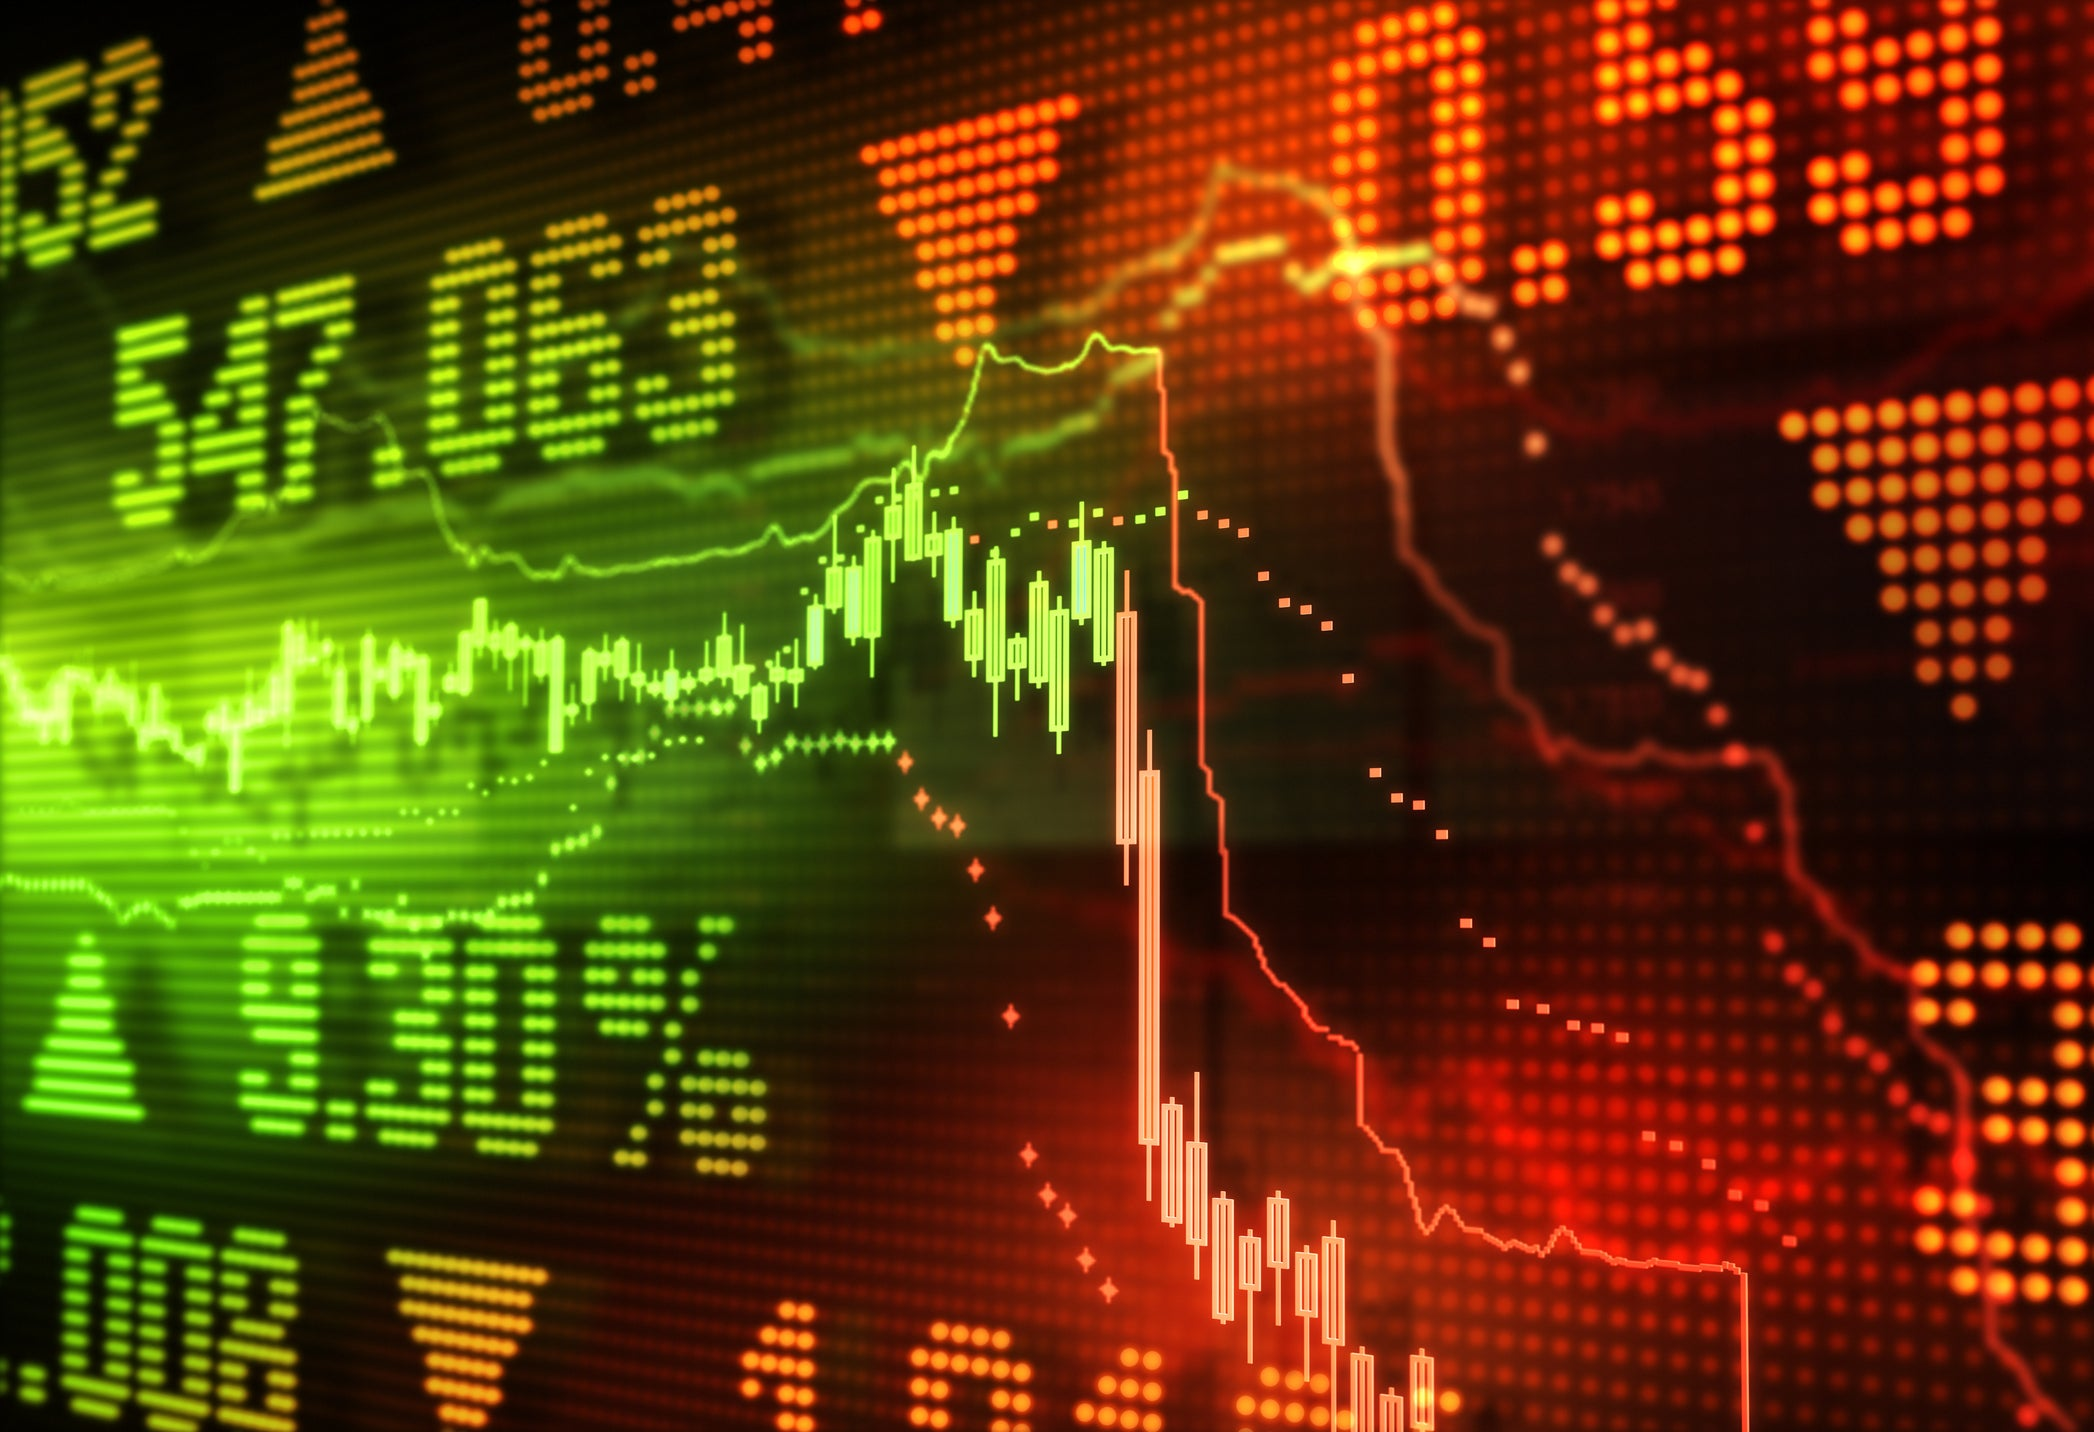 4 Reasons the Stock Market Could Crash Very Soon